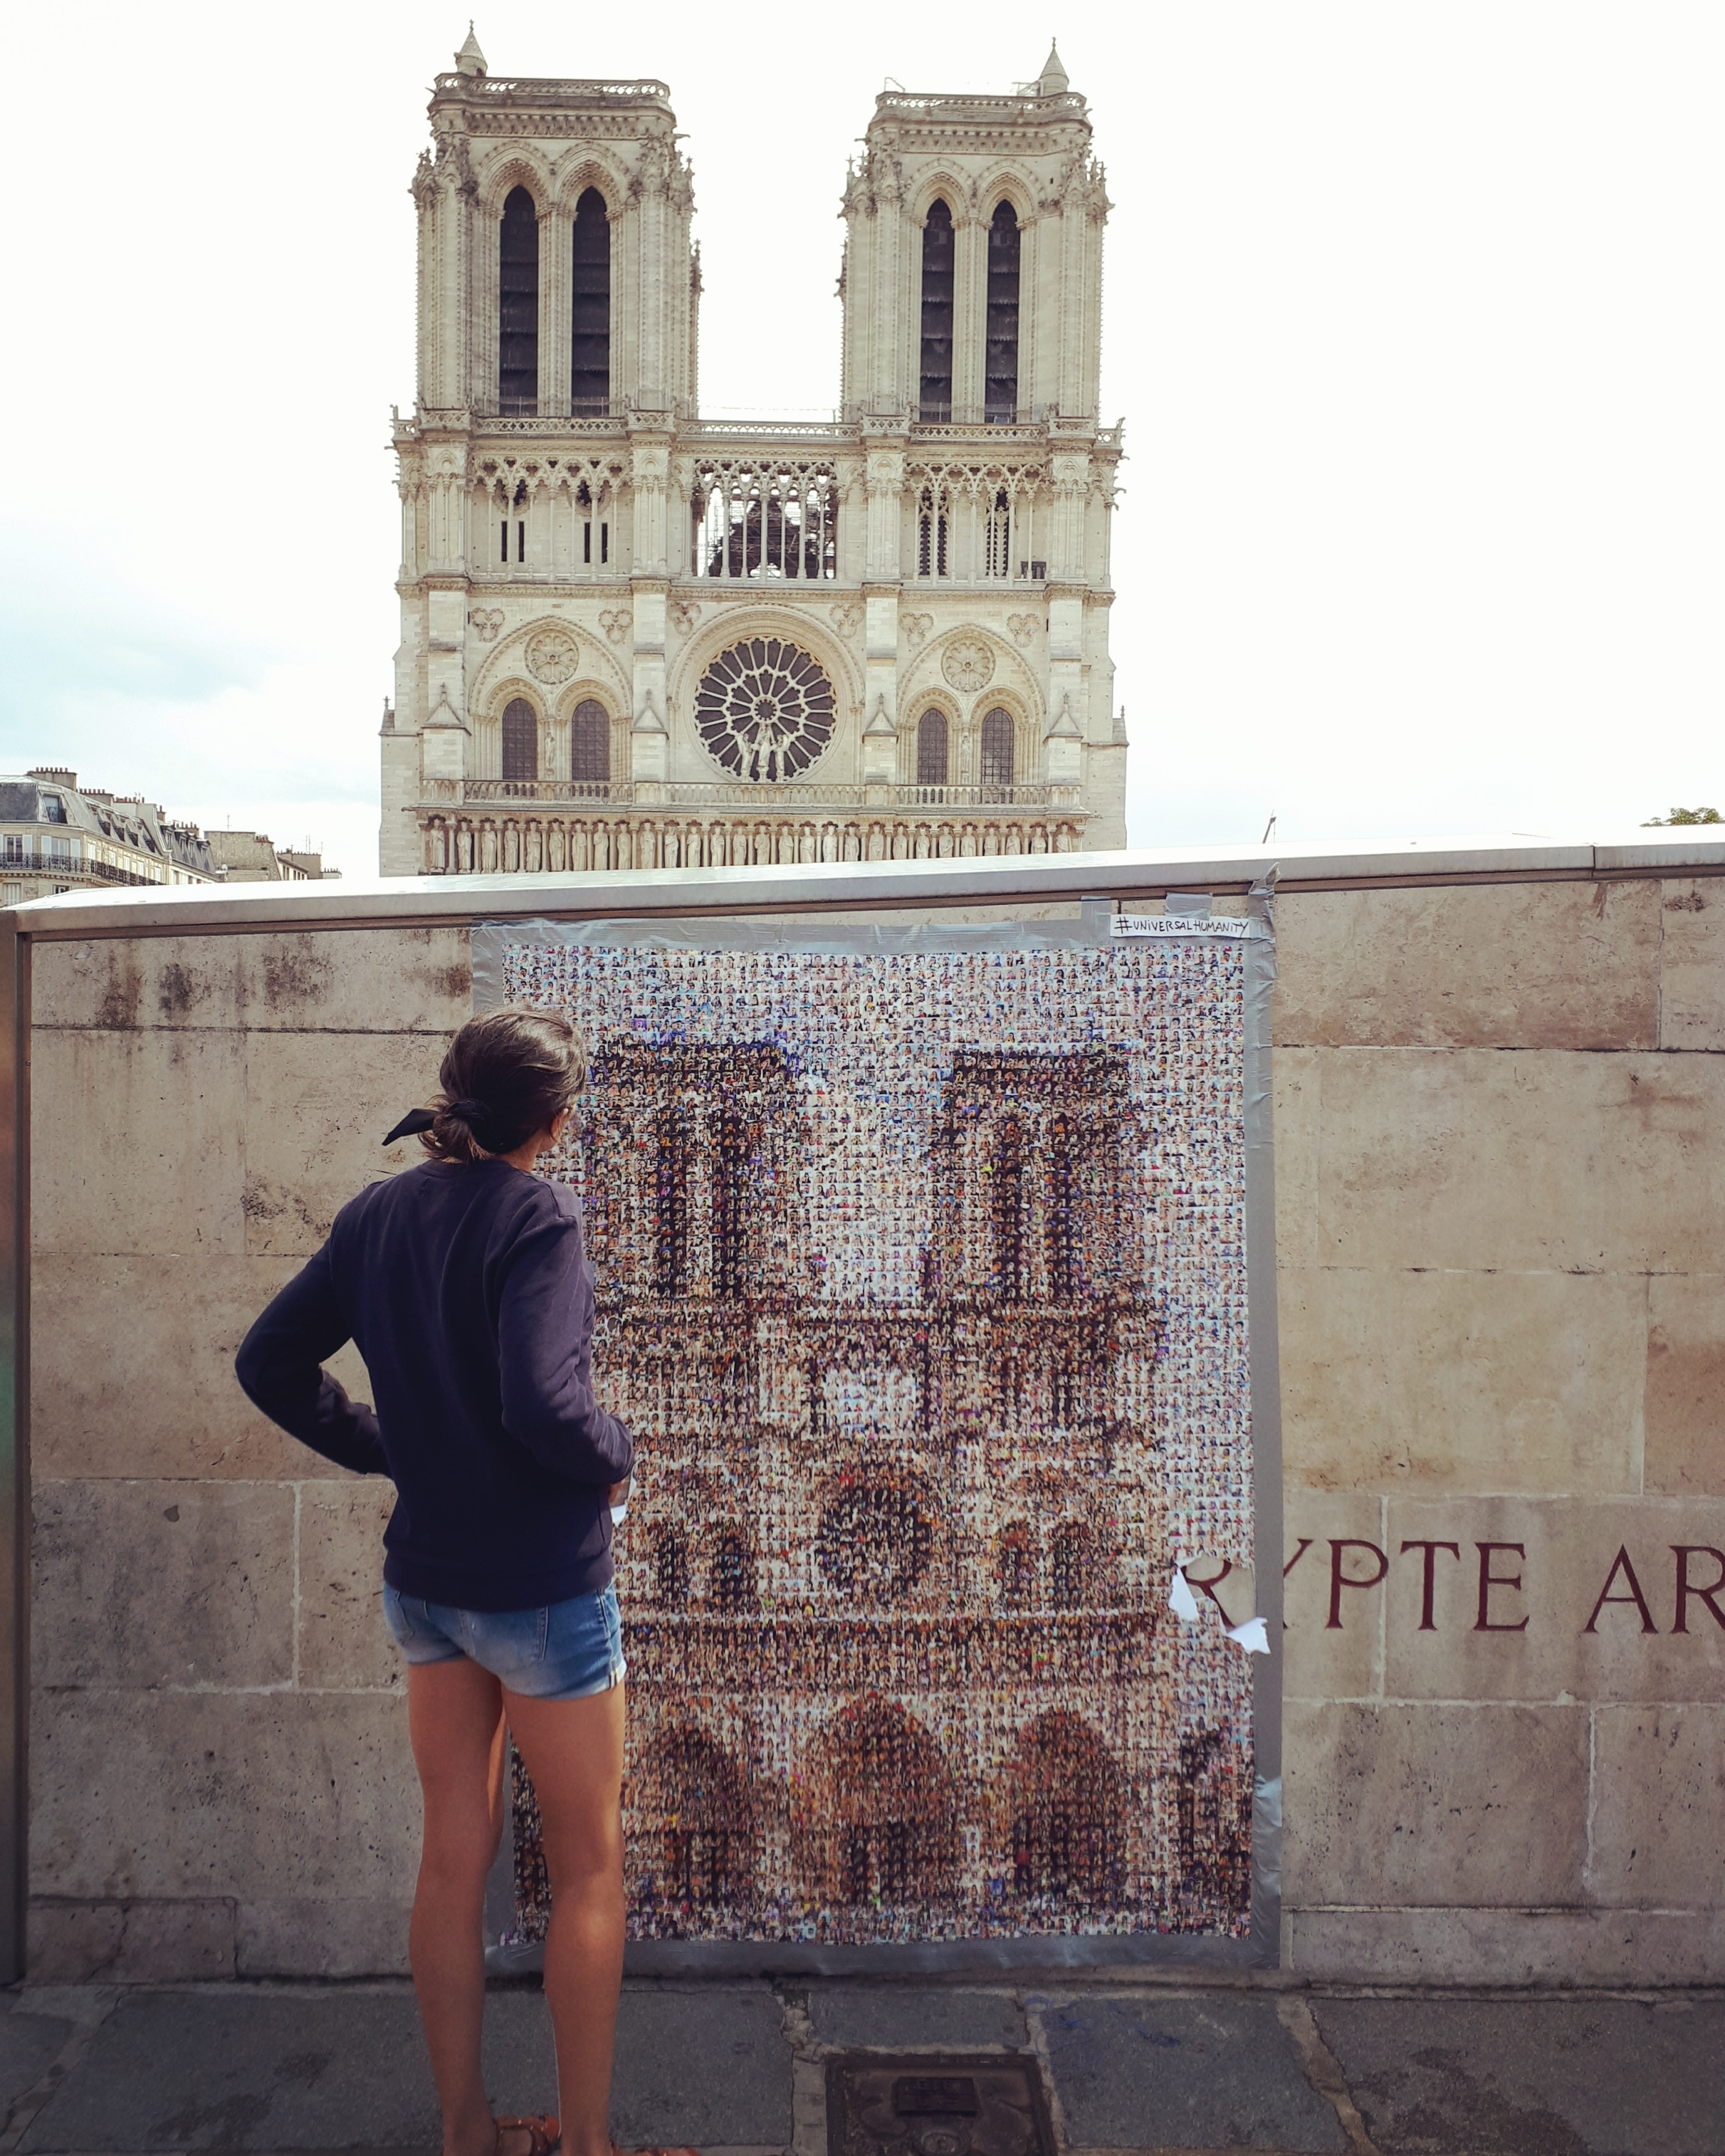 Paris day-by-day – Notre Dame (Day 8)